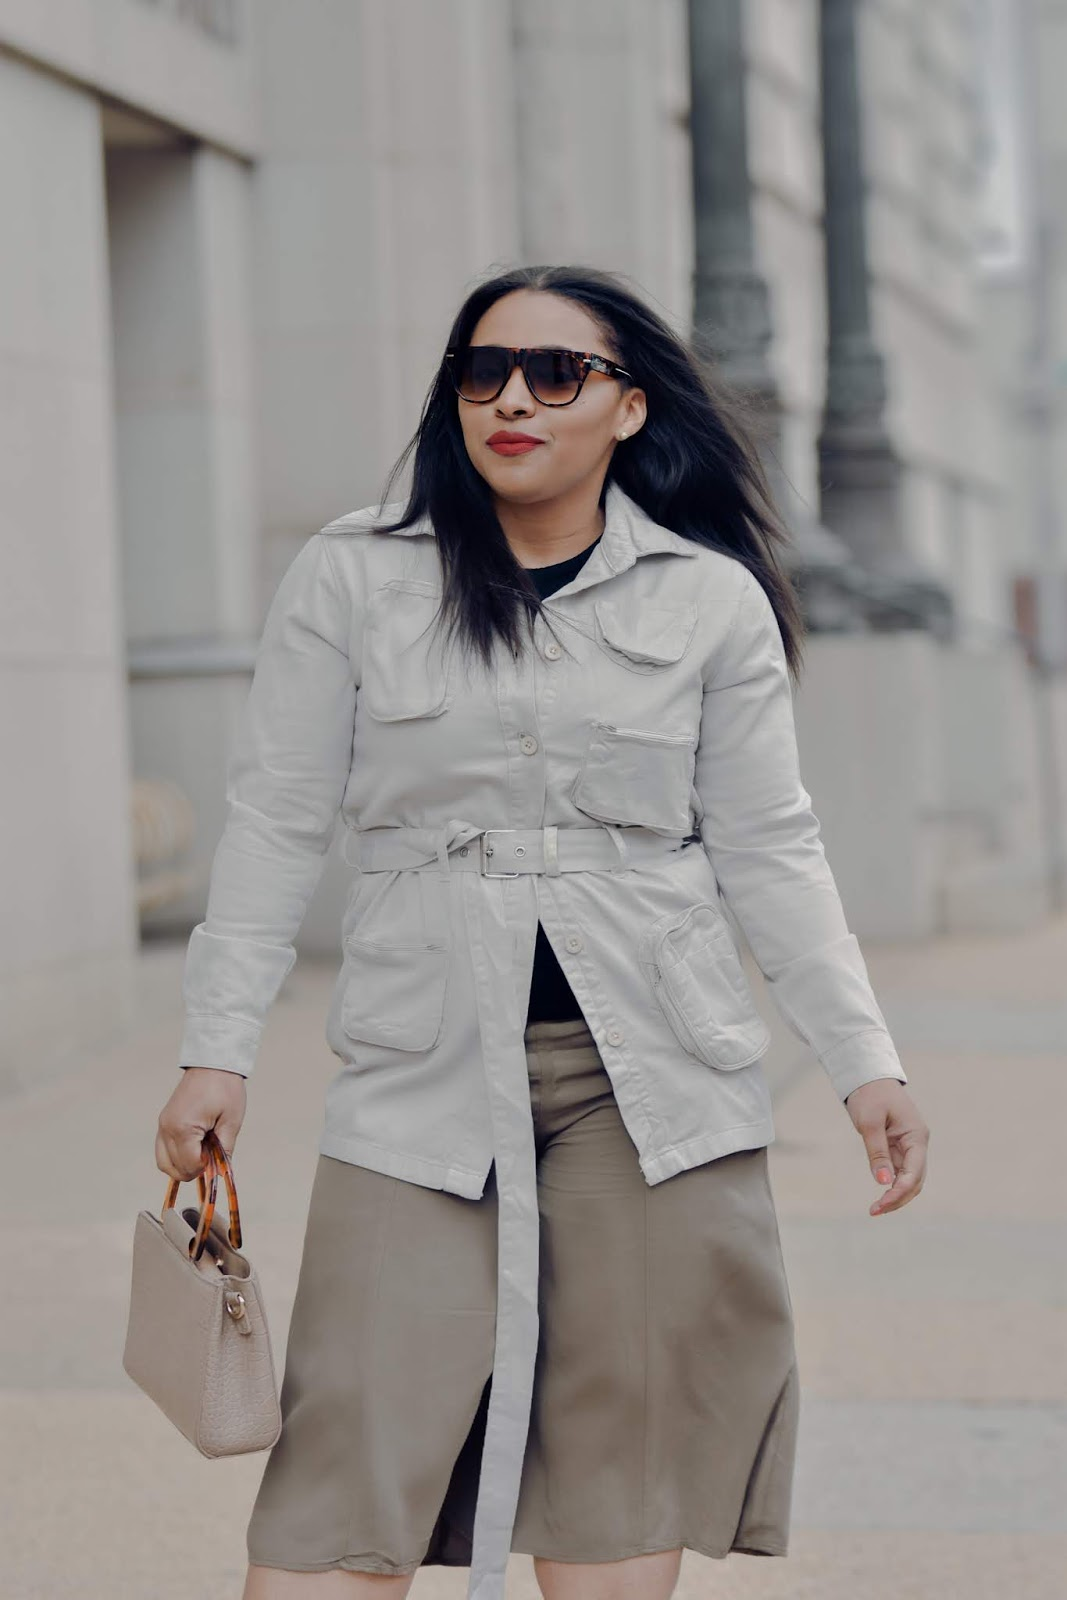 Femme luxe, lux gal, pattys kloset, utlity jacket, safri jacket, safari trend, spring neutrals, spring outfit ideas, shoedazzle boots